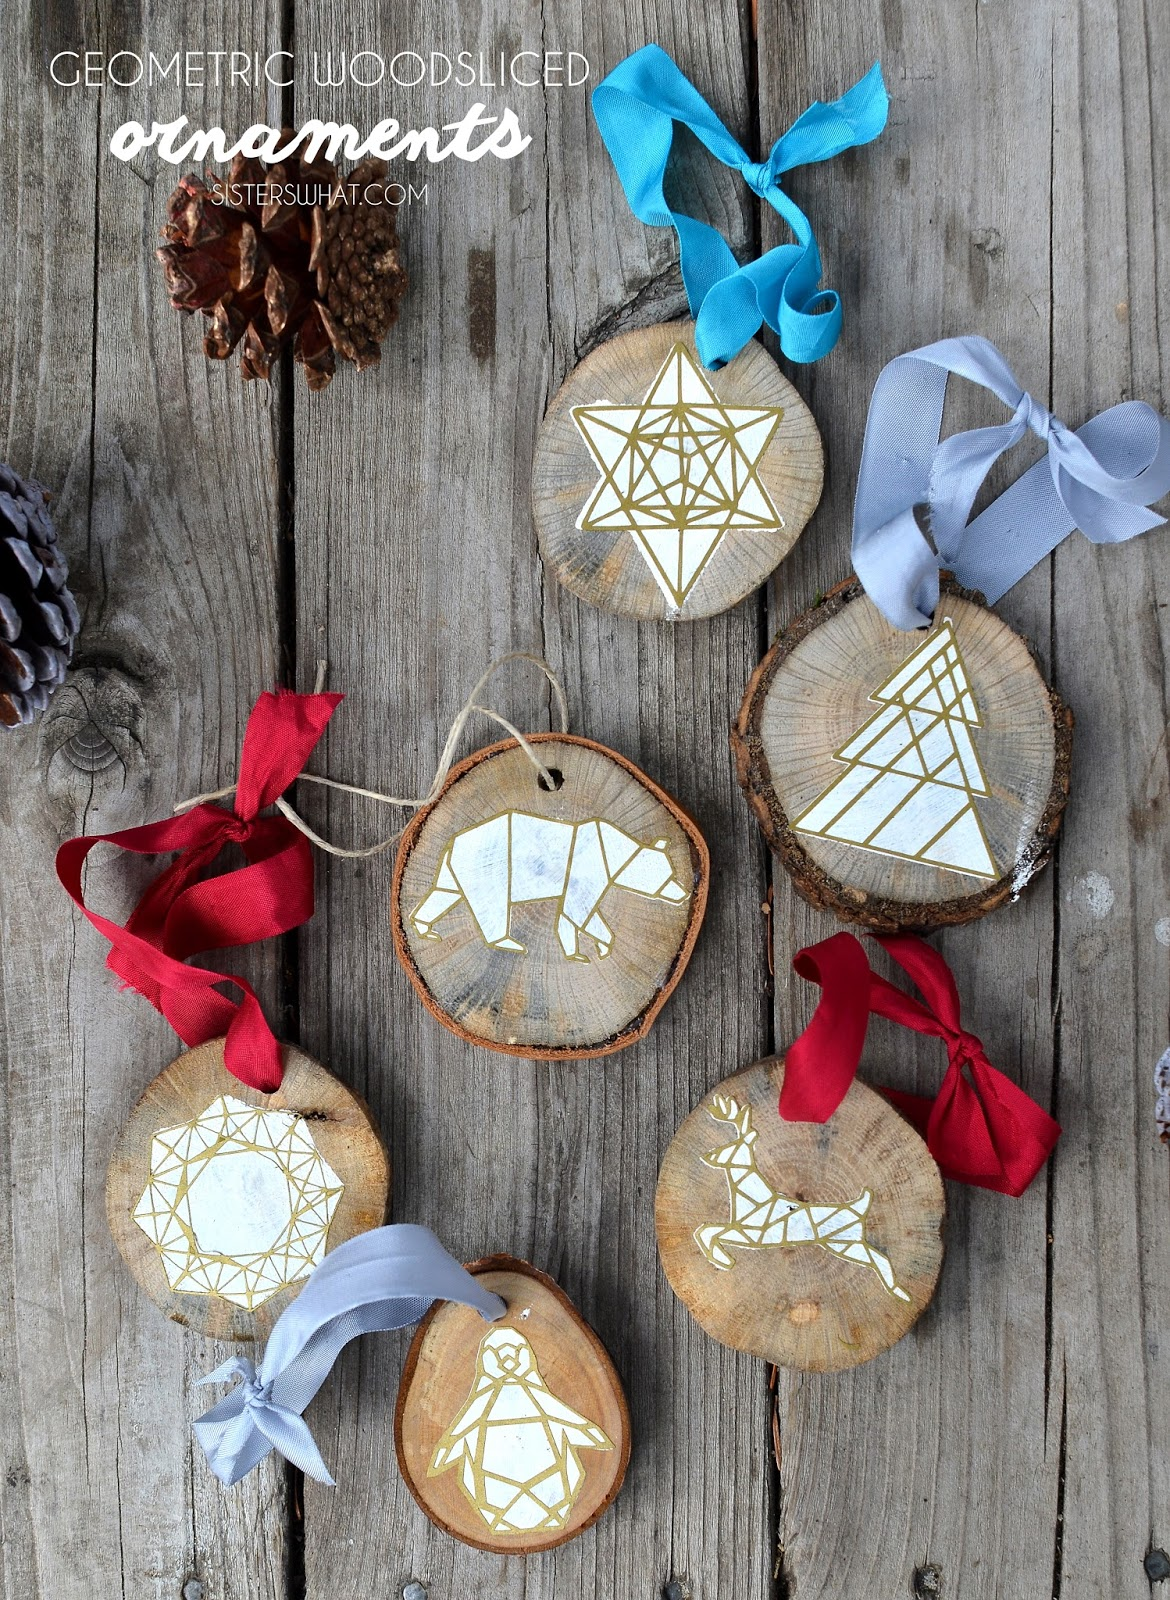 Geometric Wood Sliced Ornaments